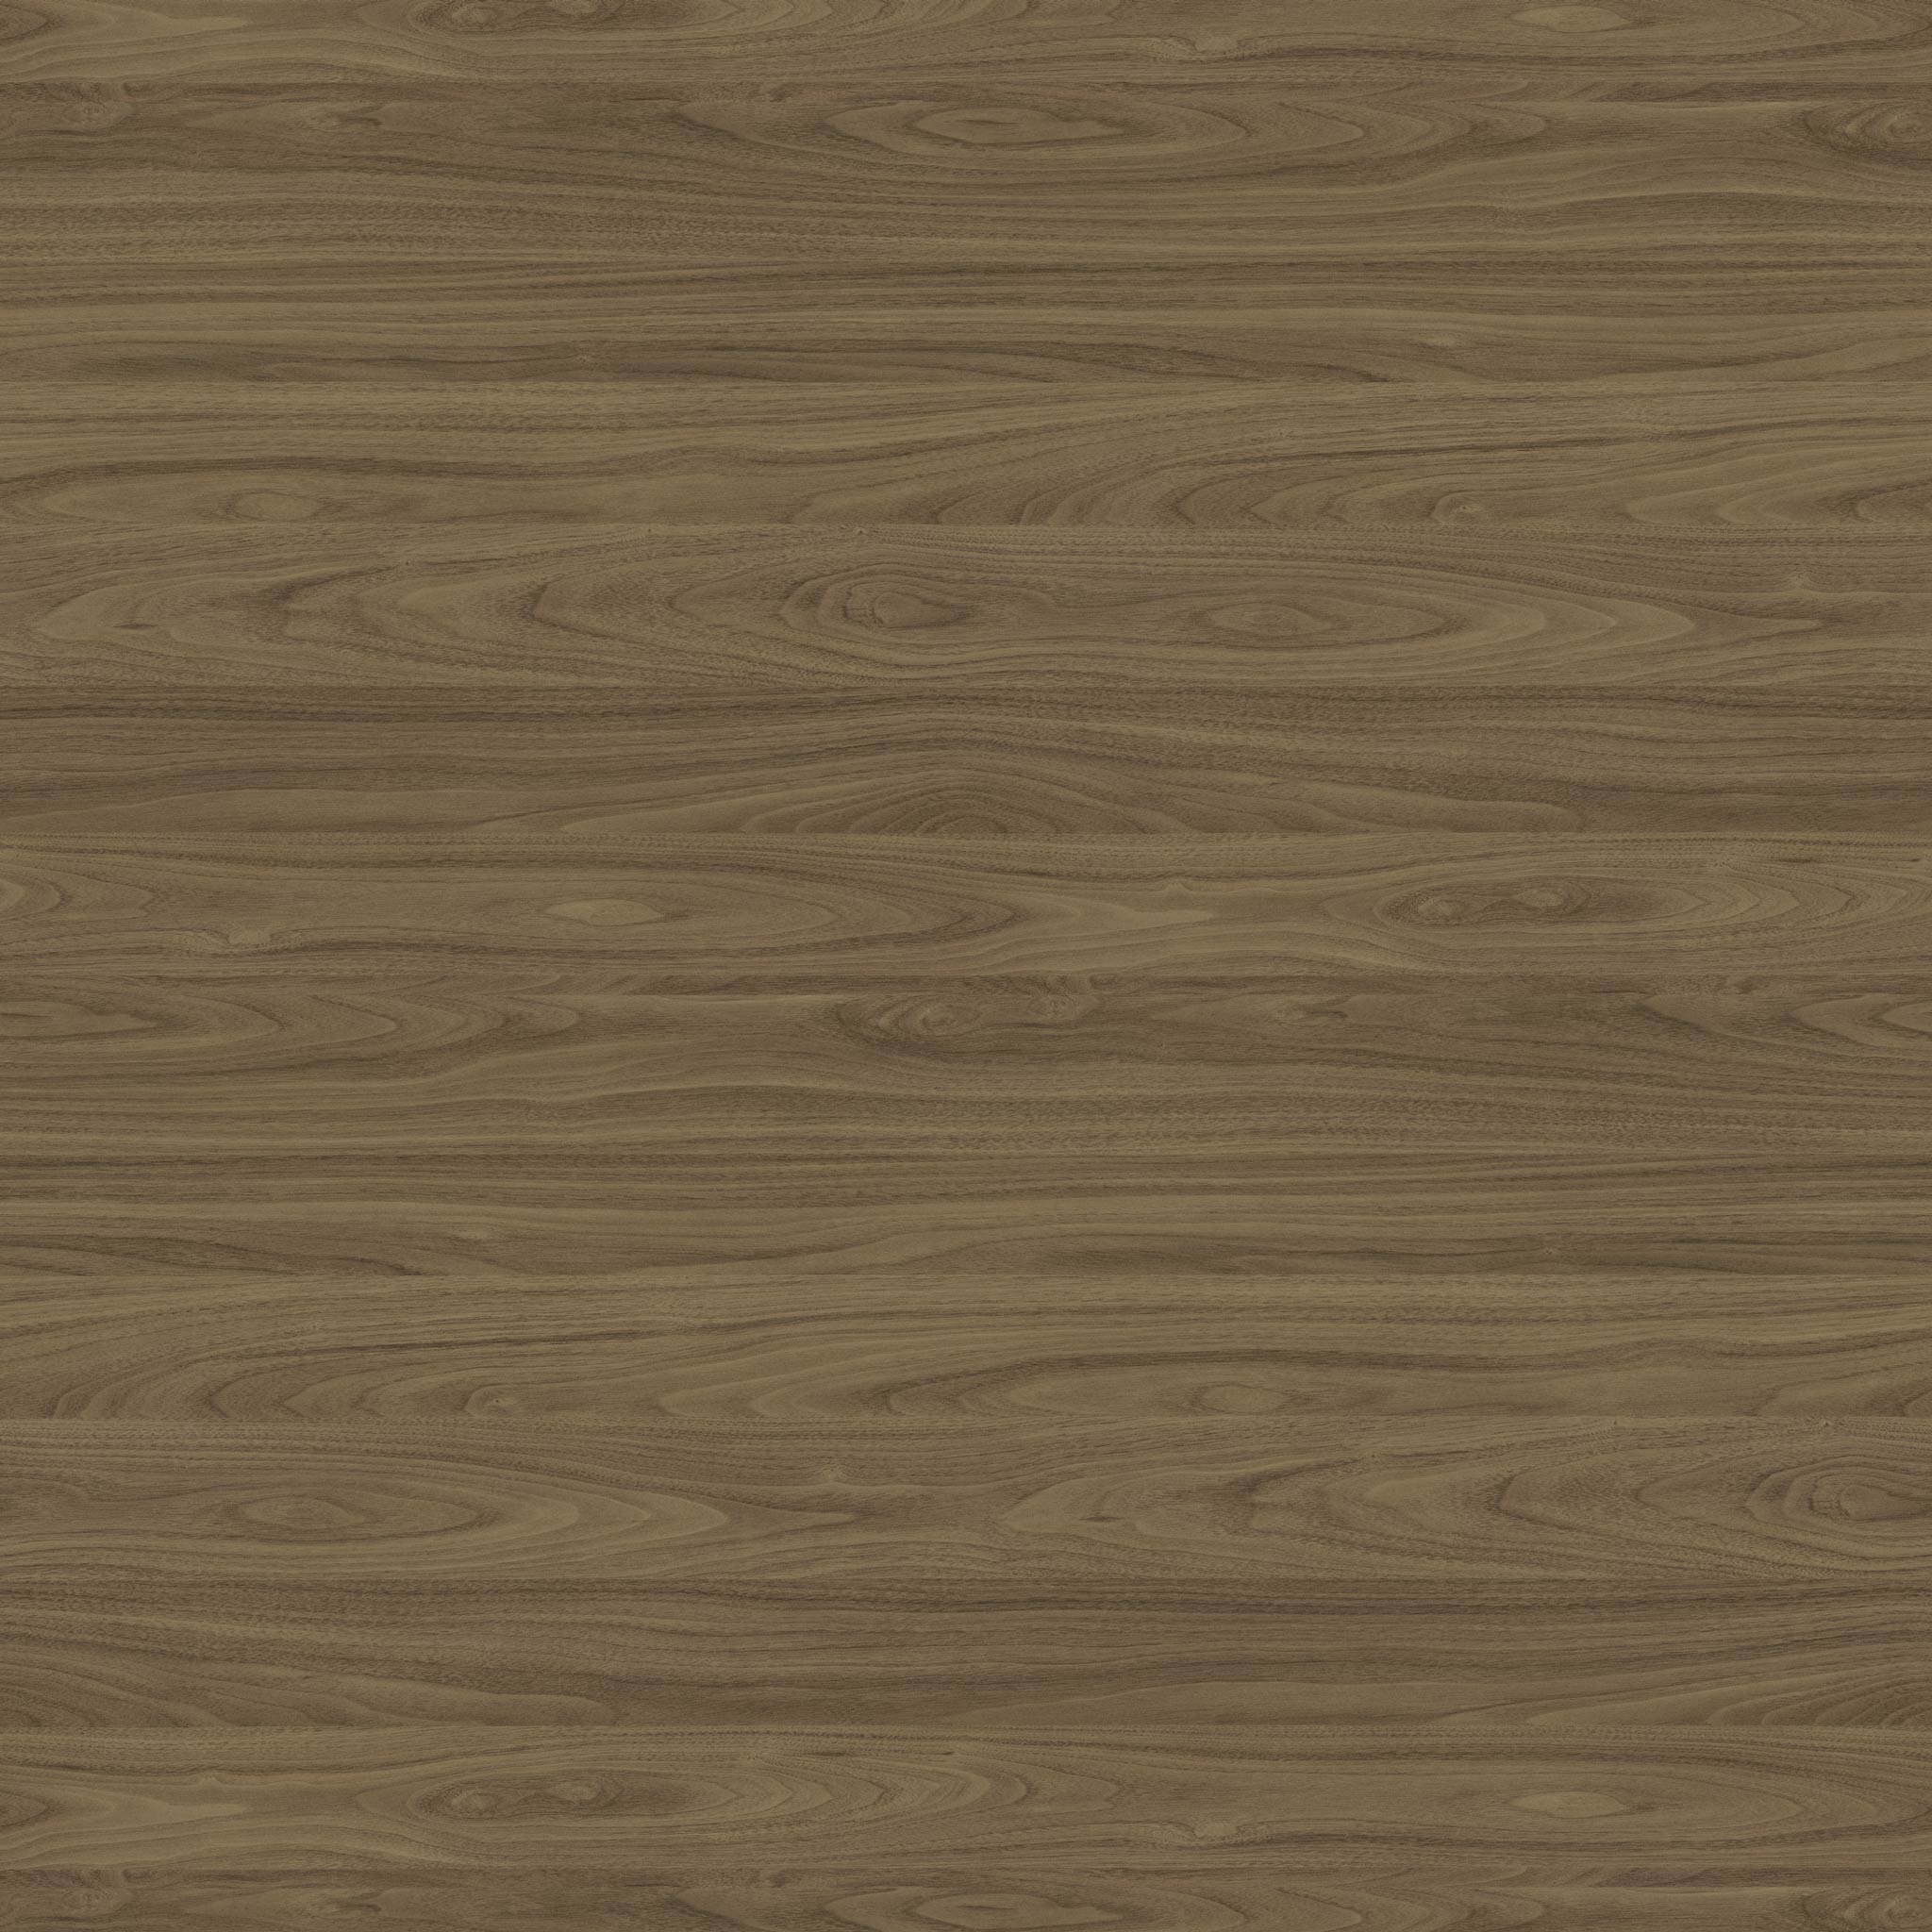 Egger Contemporary Natural Carini Walnut kitchen worktop sample.